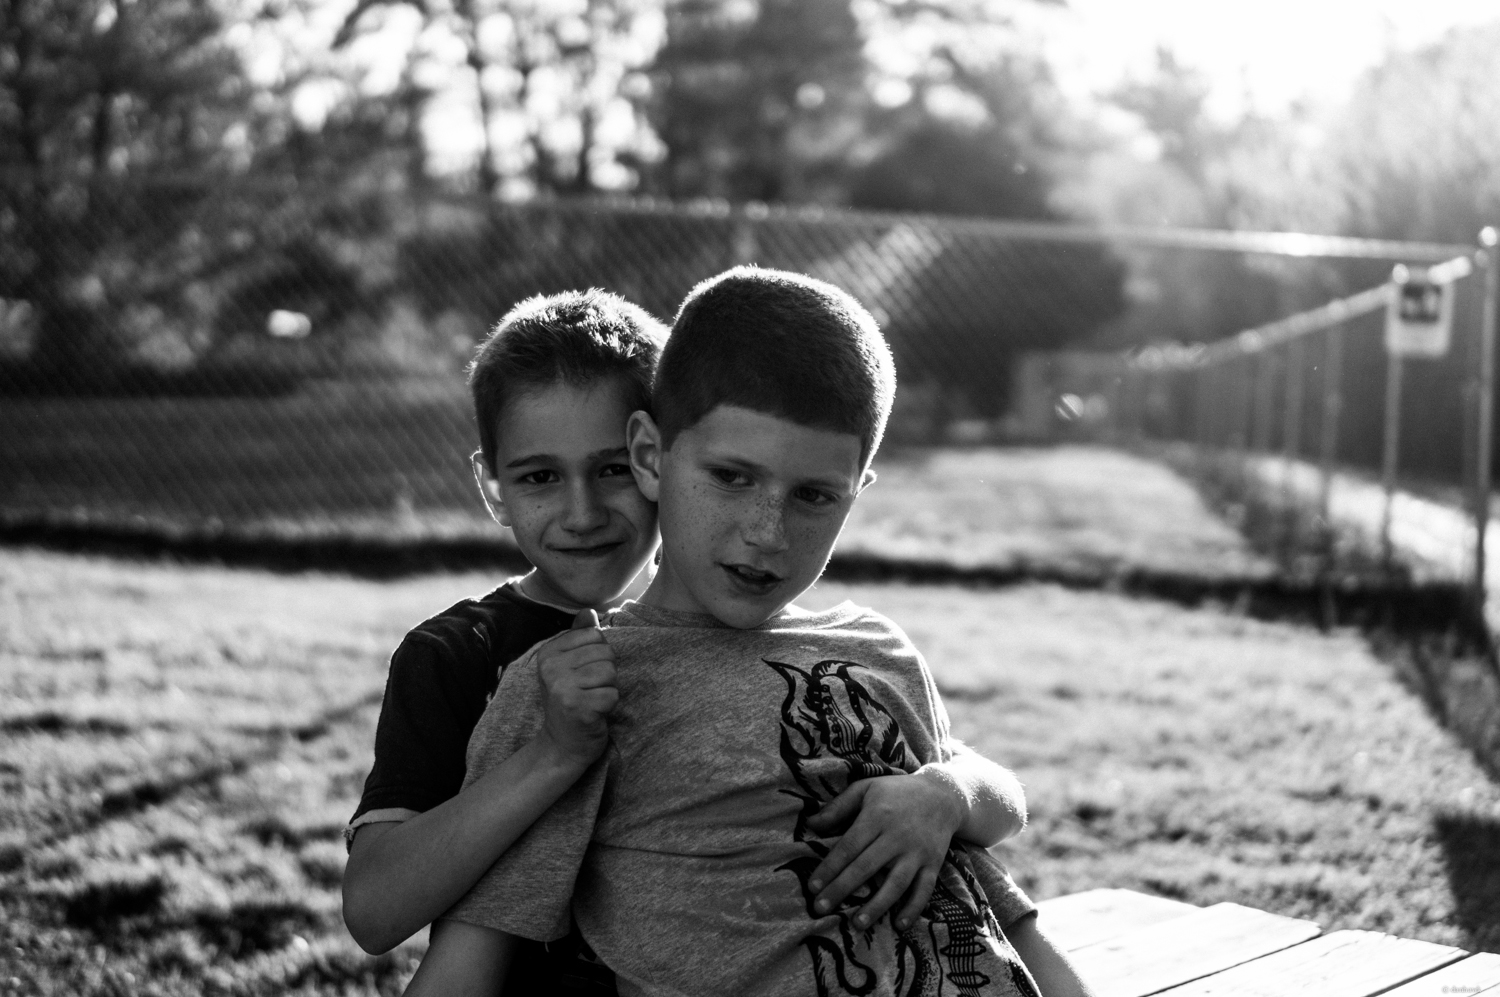 Brothers | 365 Project | May 4th, 2013 | 35mm, f/1.8, ISO 100, 1/2000